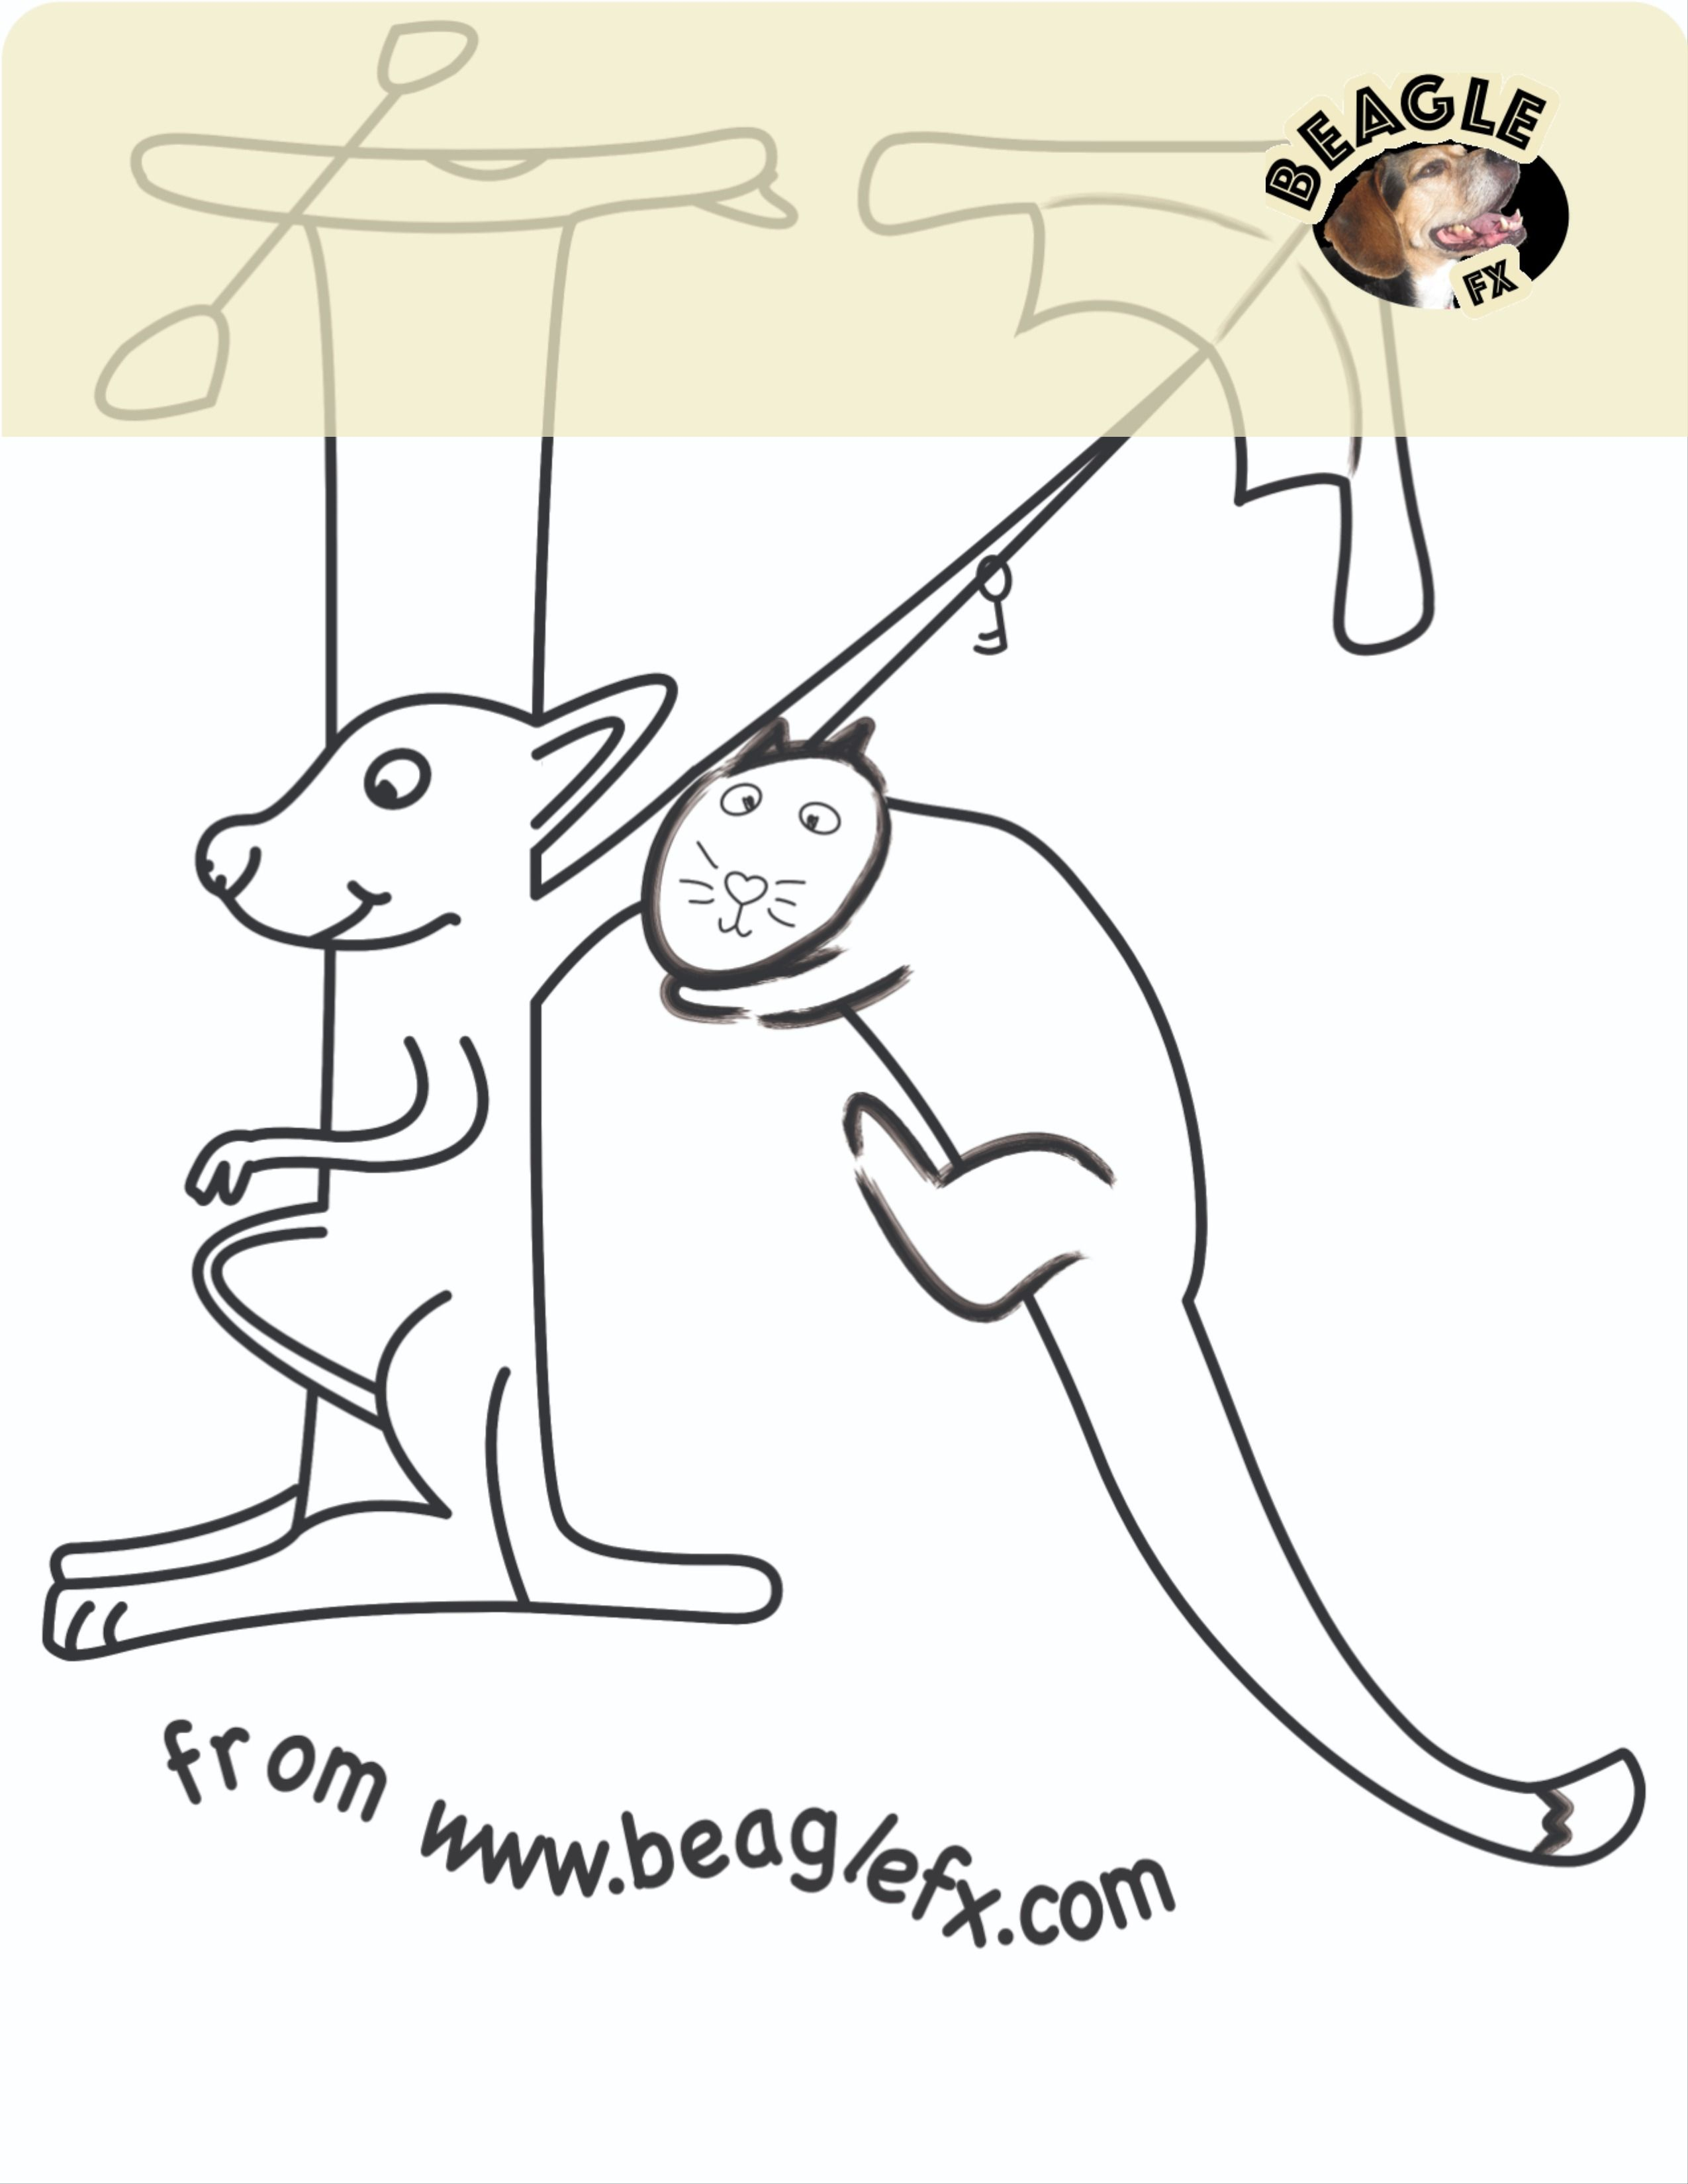 Free Letter K Coloring Sheet from your Design Co. BeagleFX